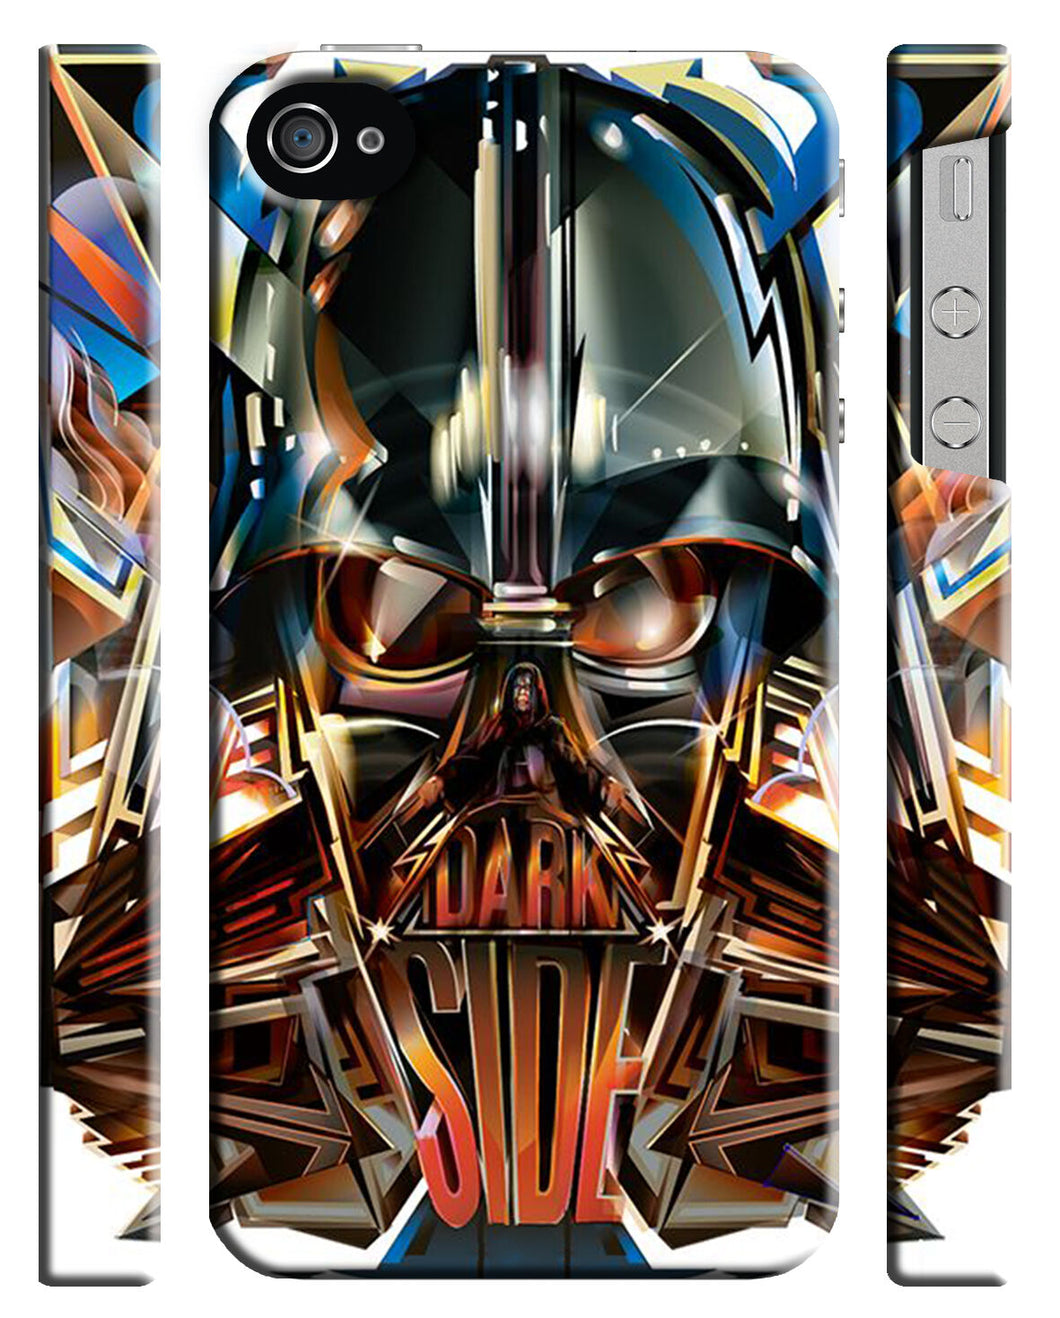 Star Wars Darth Vader Iphone 4s 5 5s 5c 6 6S 7 12 Pro Max + Plus Case Cover ip23